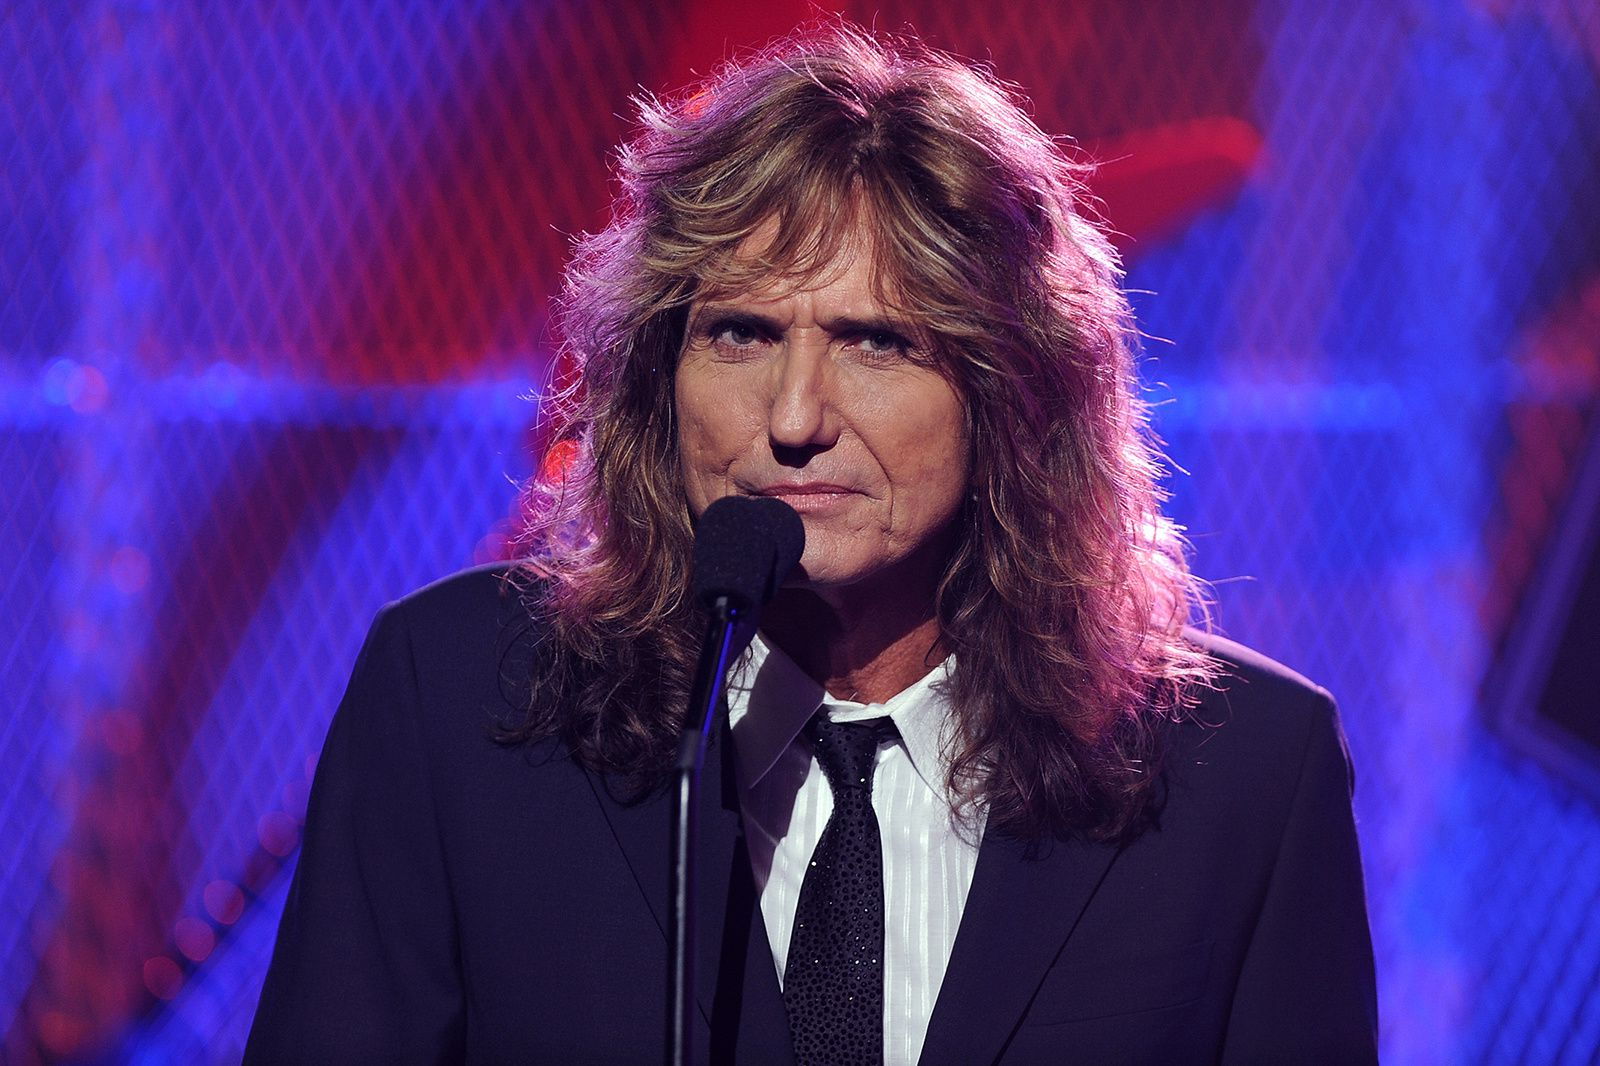 David Coverdale, Whitesnake (2011) Los Angeles, CA - credit: Frazer Harrison Getty Images